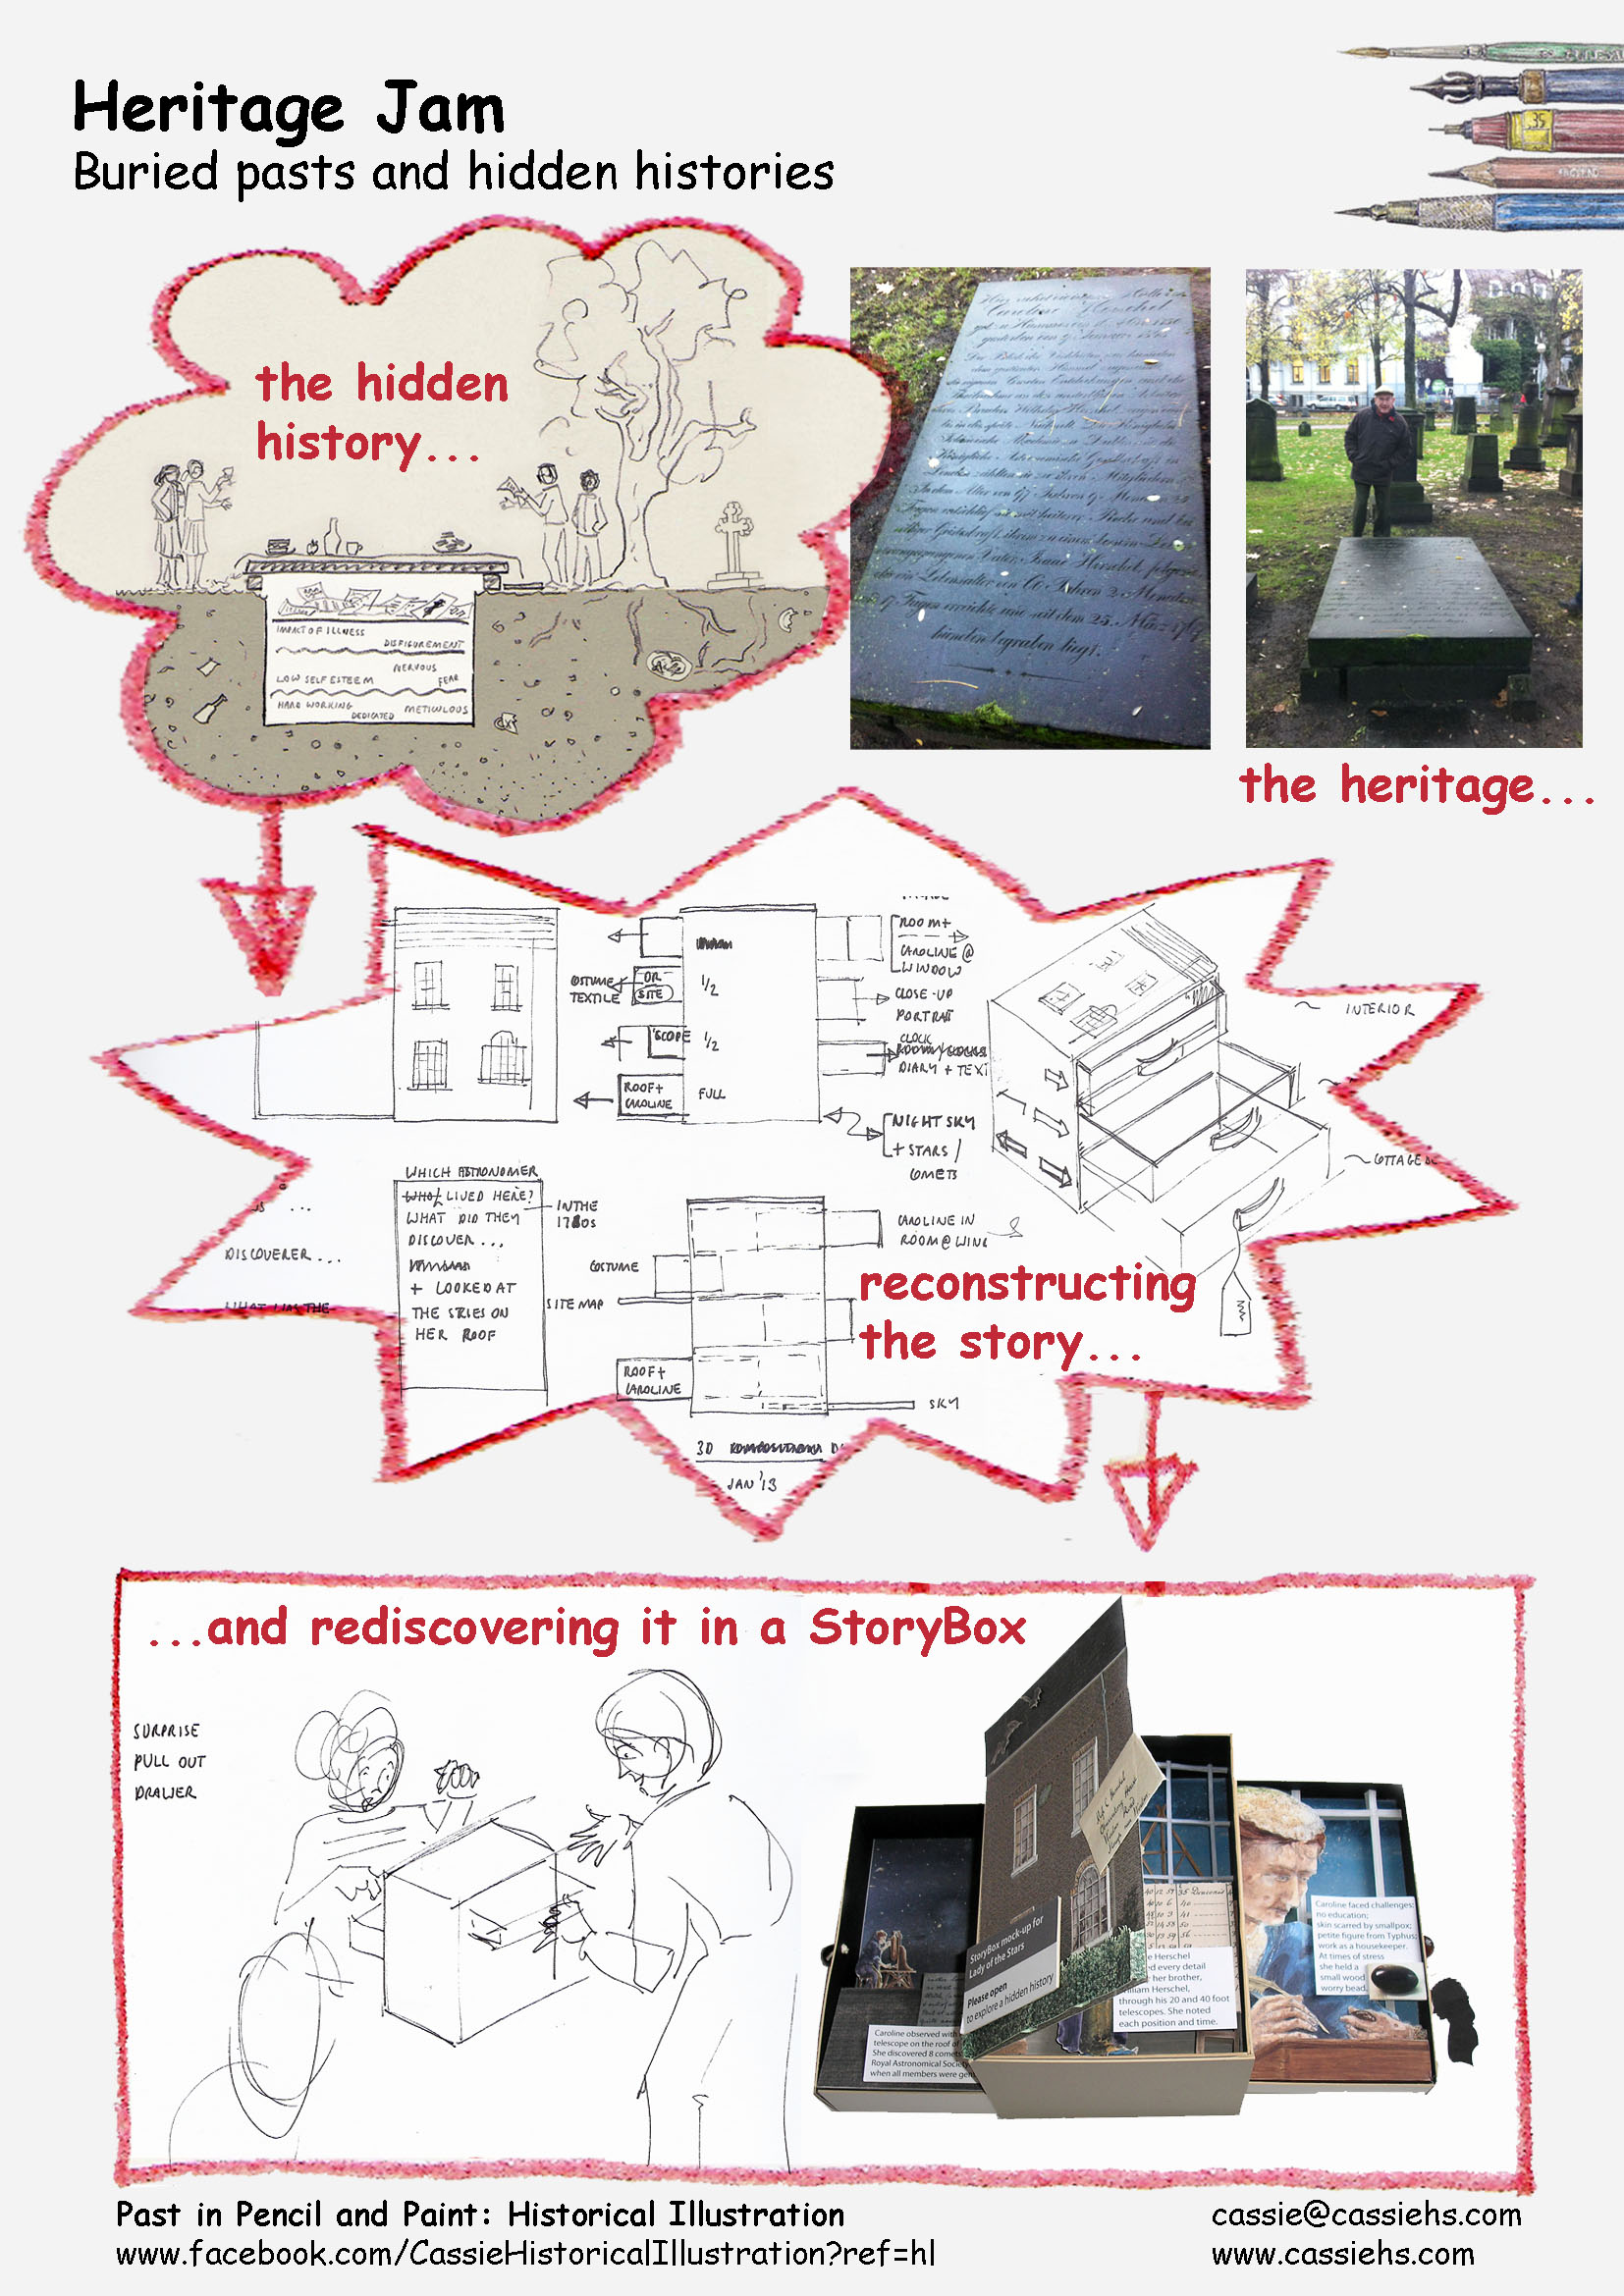 Rediscovering a buried past and hidden history - Storybox - Cassie Herschel-Shorland